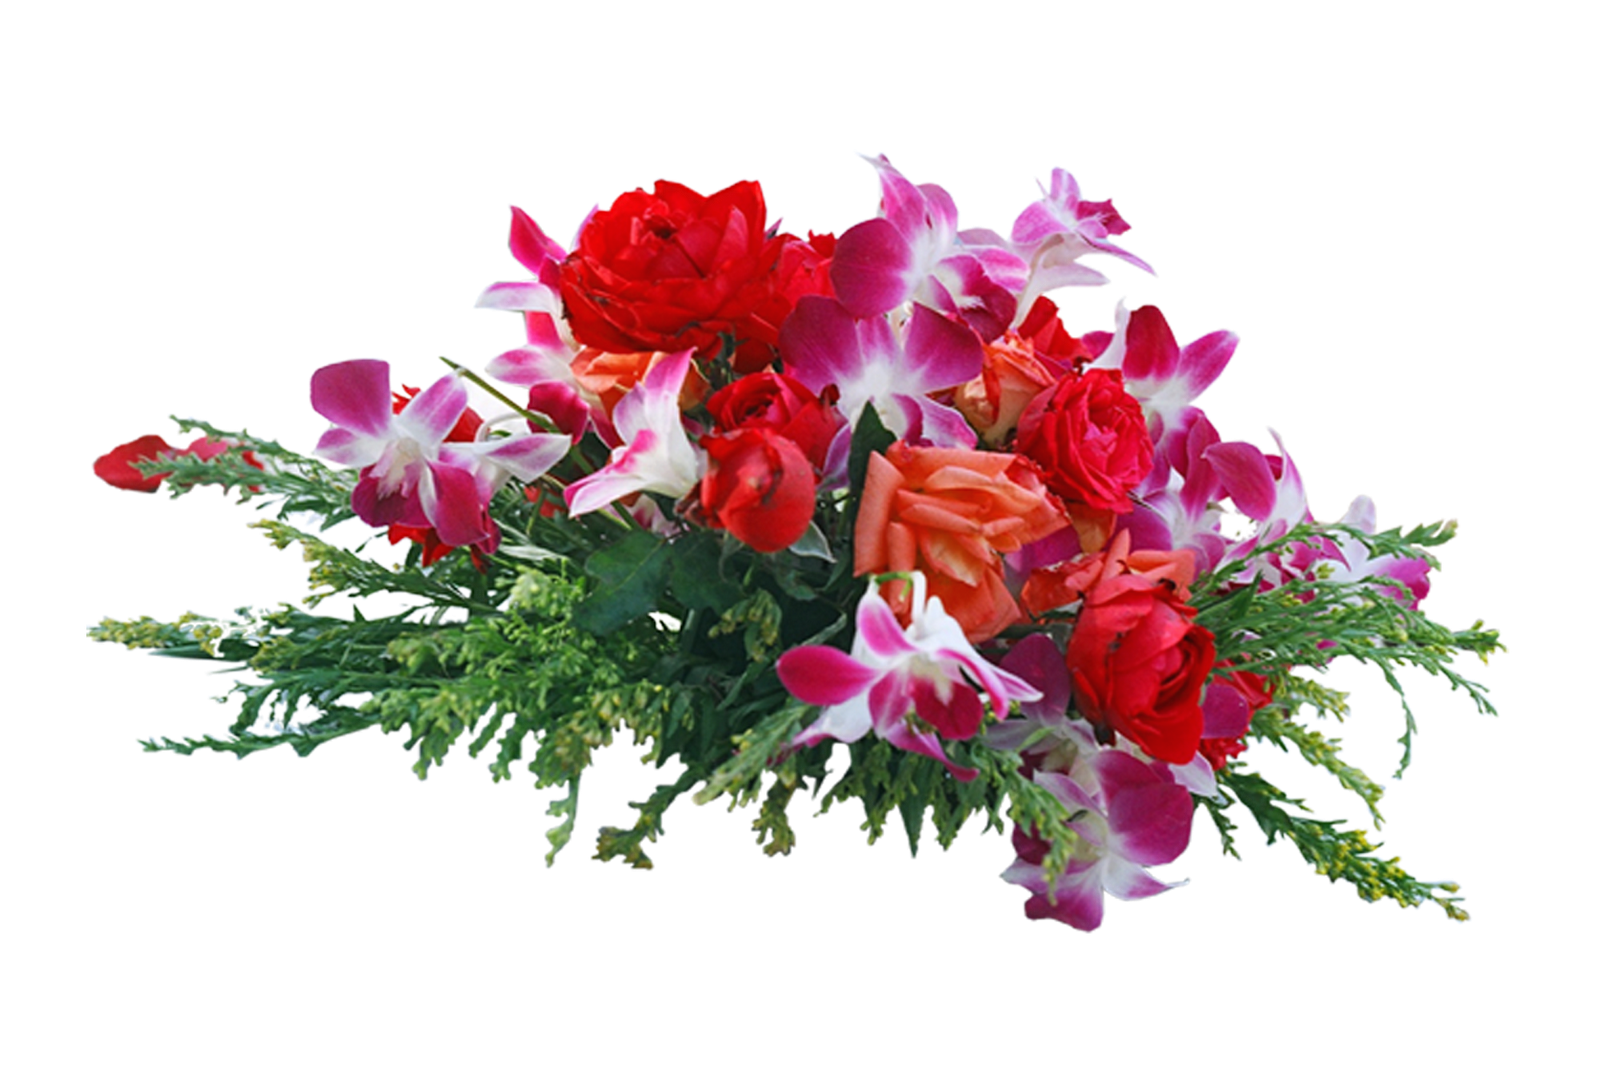 Wedding Flowers Png image #28707